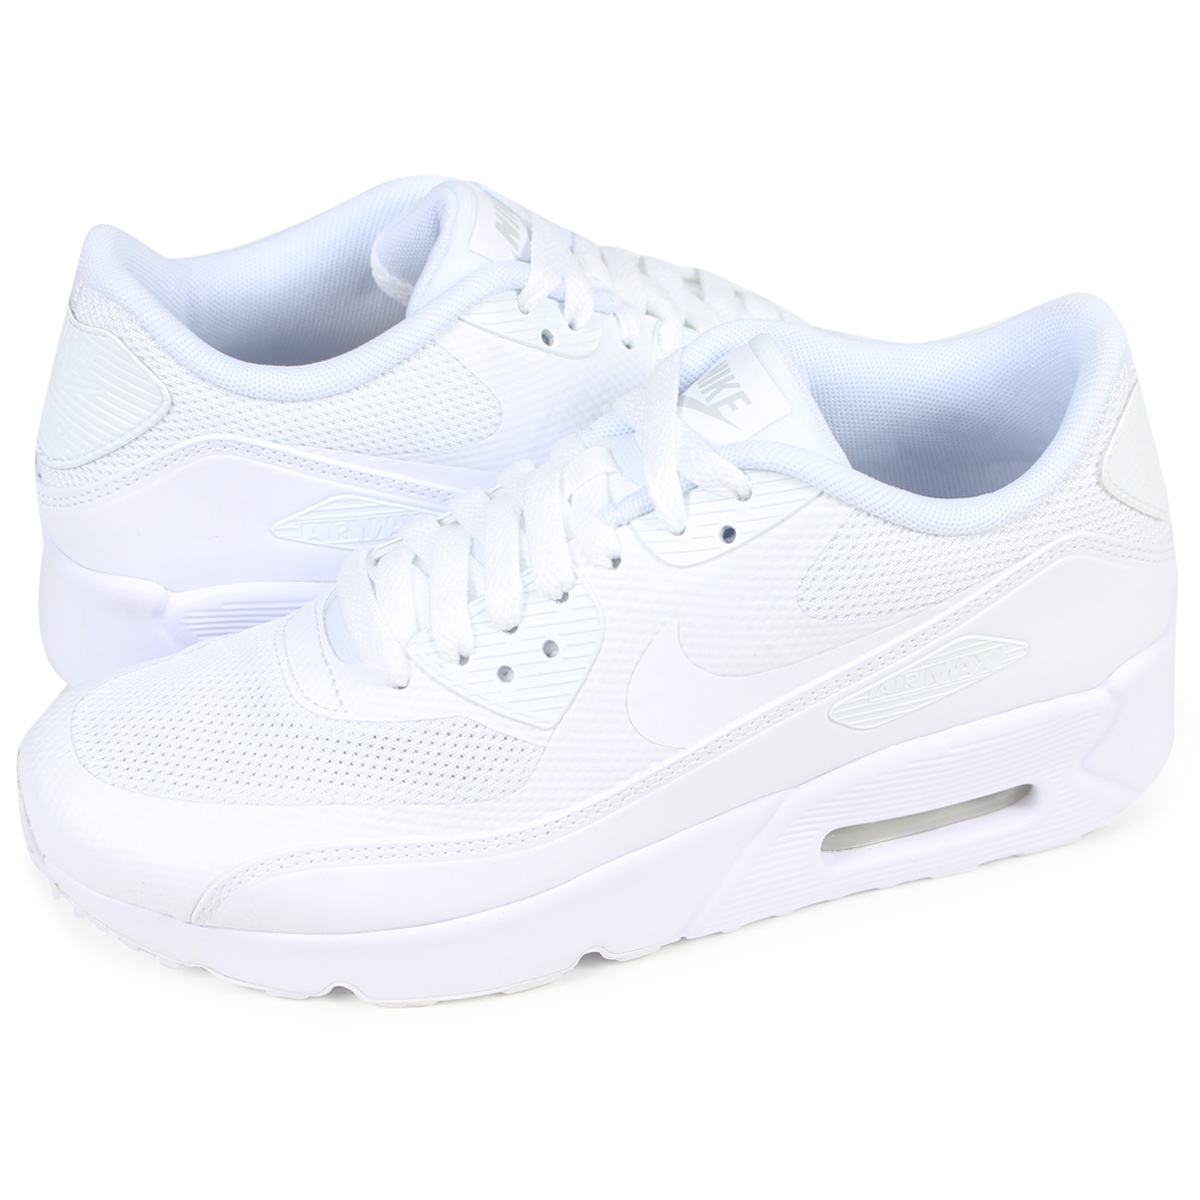 Nike NIKE Air Max 90 ultra Lady's sneakers AIR MAX 90 ULTRA ESS 2.0 GS 869,950 100 shoes white [729 Shinnyu load]